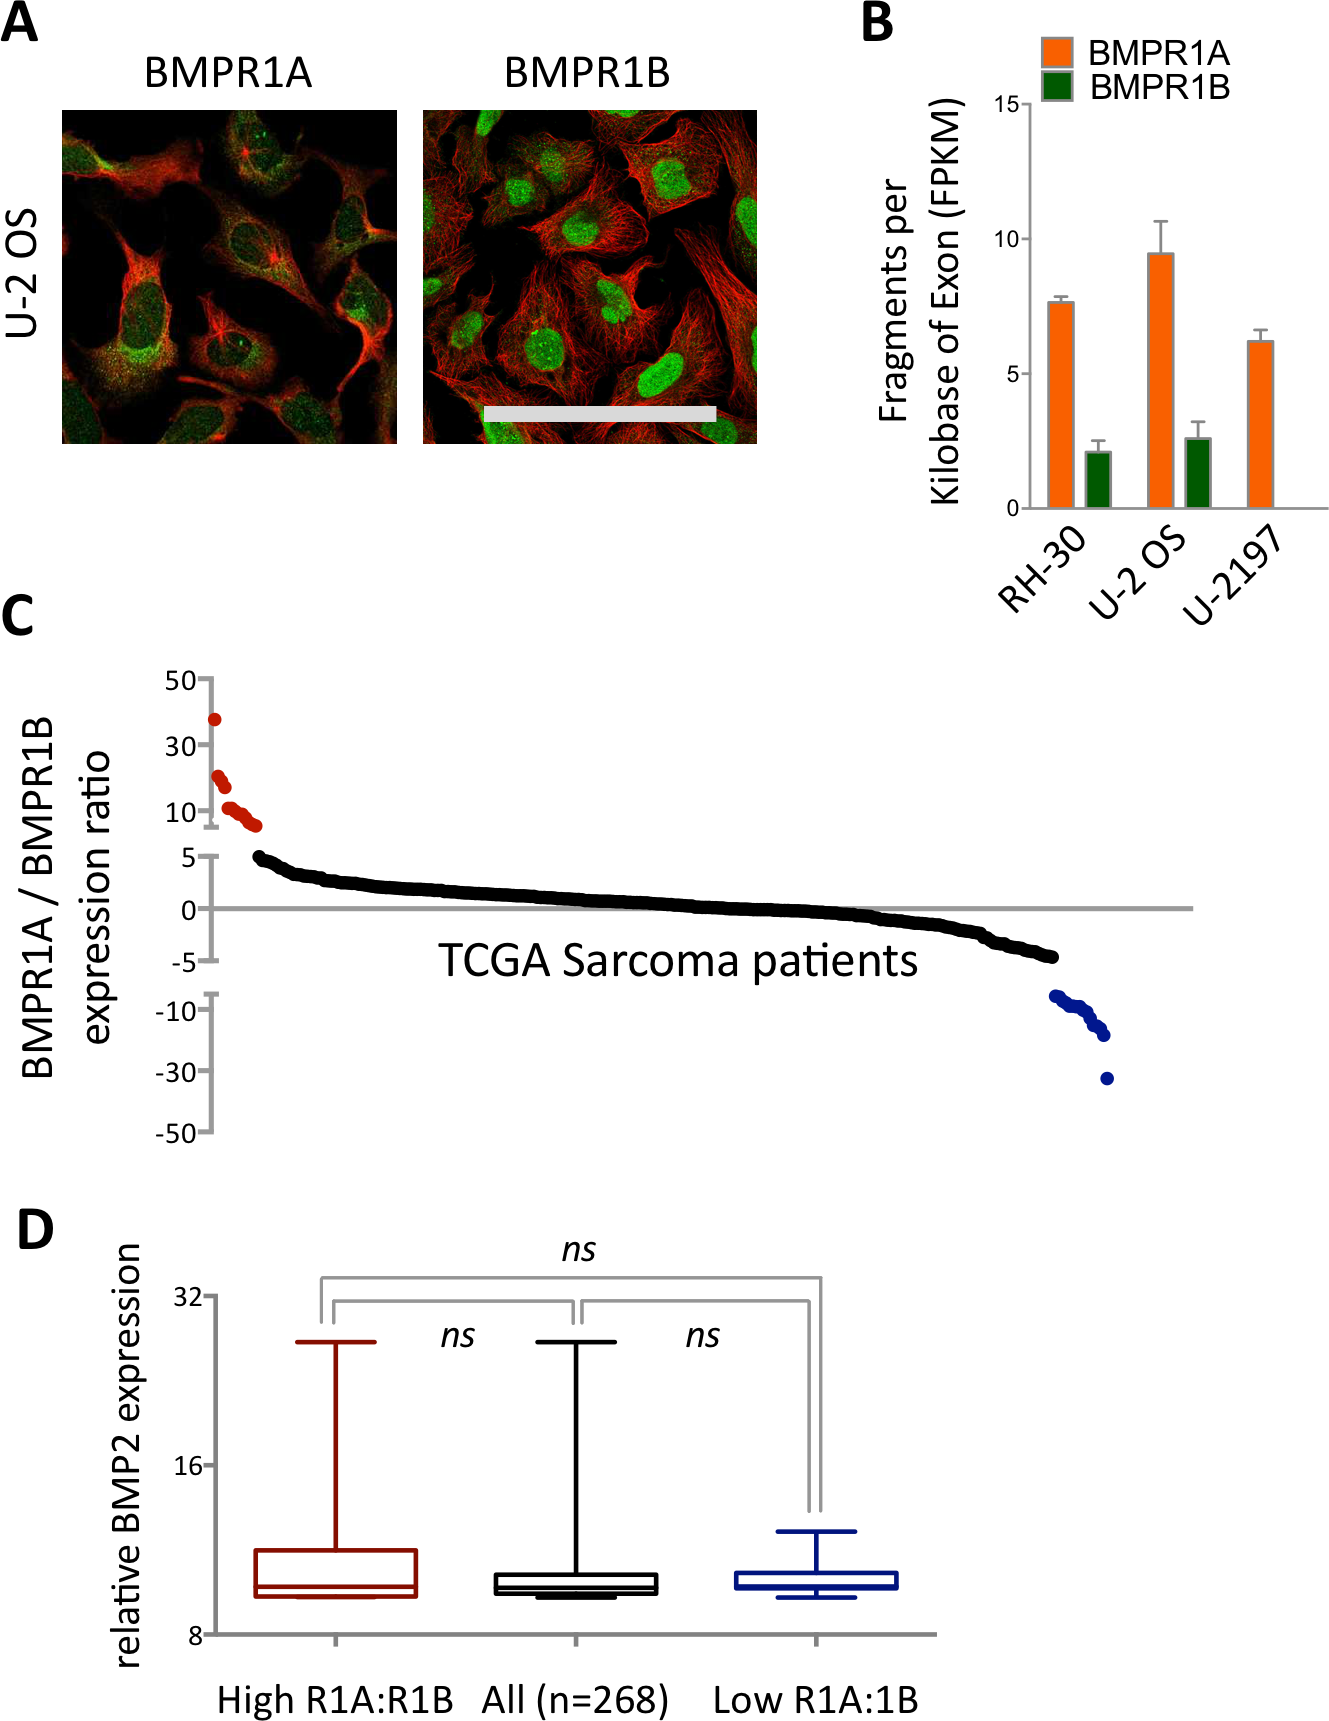 Bmp2 Bmpr1a Is Linked To Tumour Progression In Dedifferentiated Liposarcomas Peerj